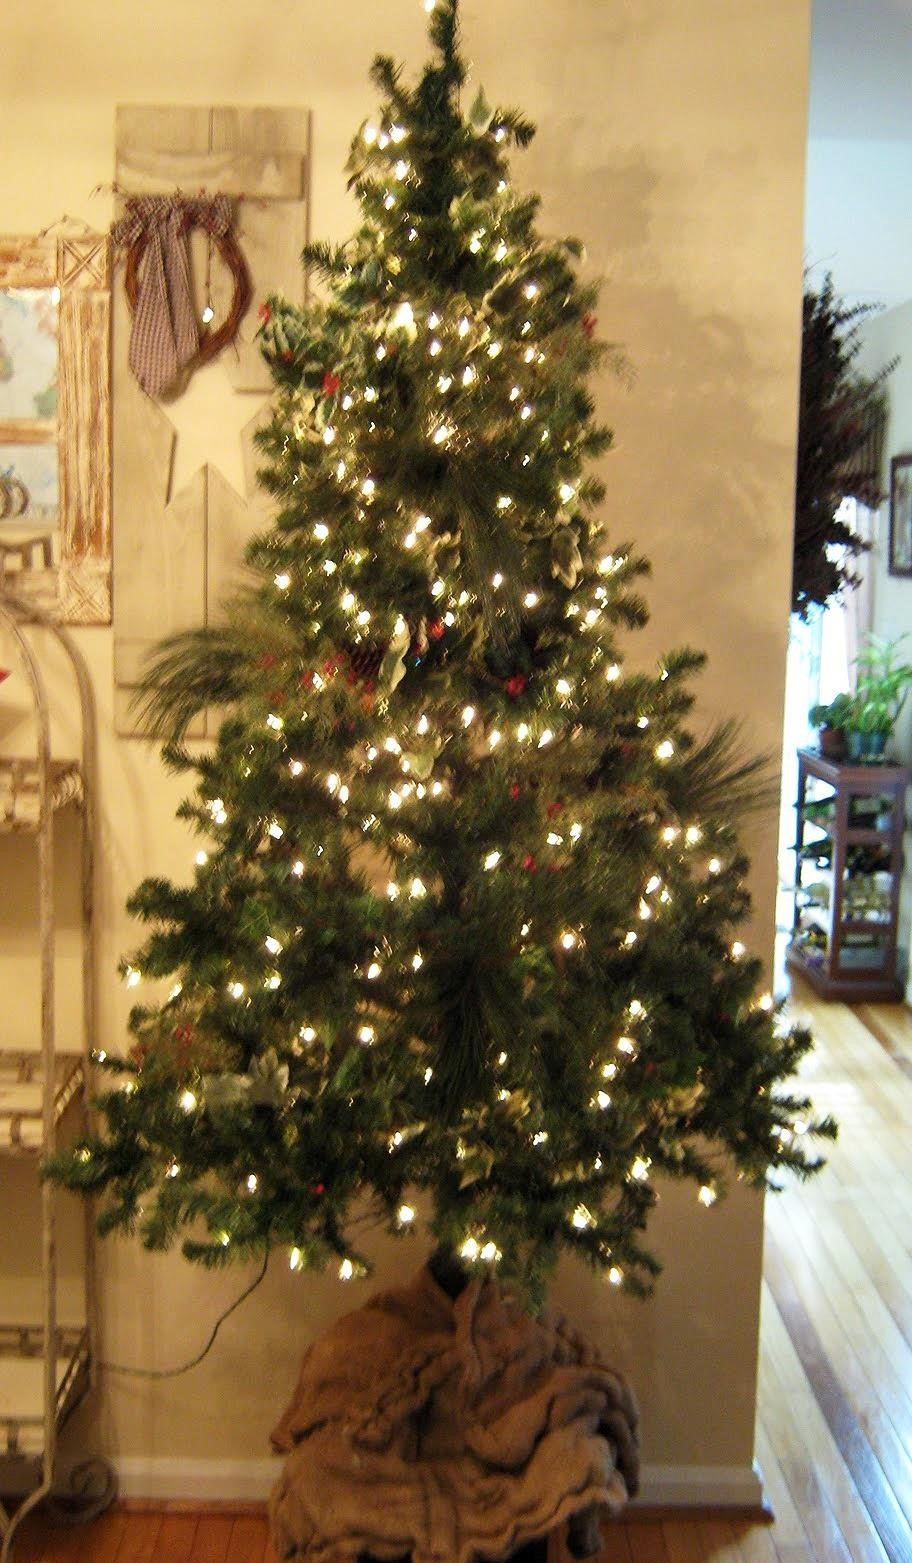 (2) After: Looks like a full tree. Images via Fake-It-Frugal